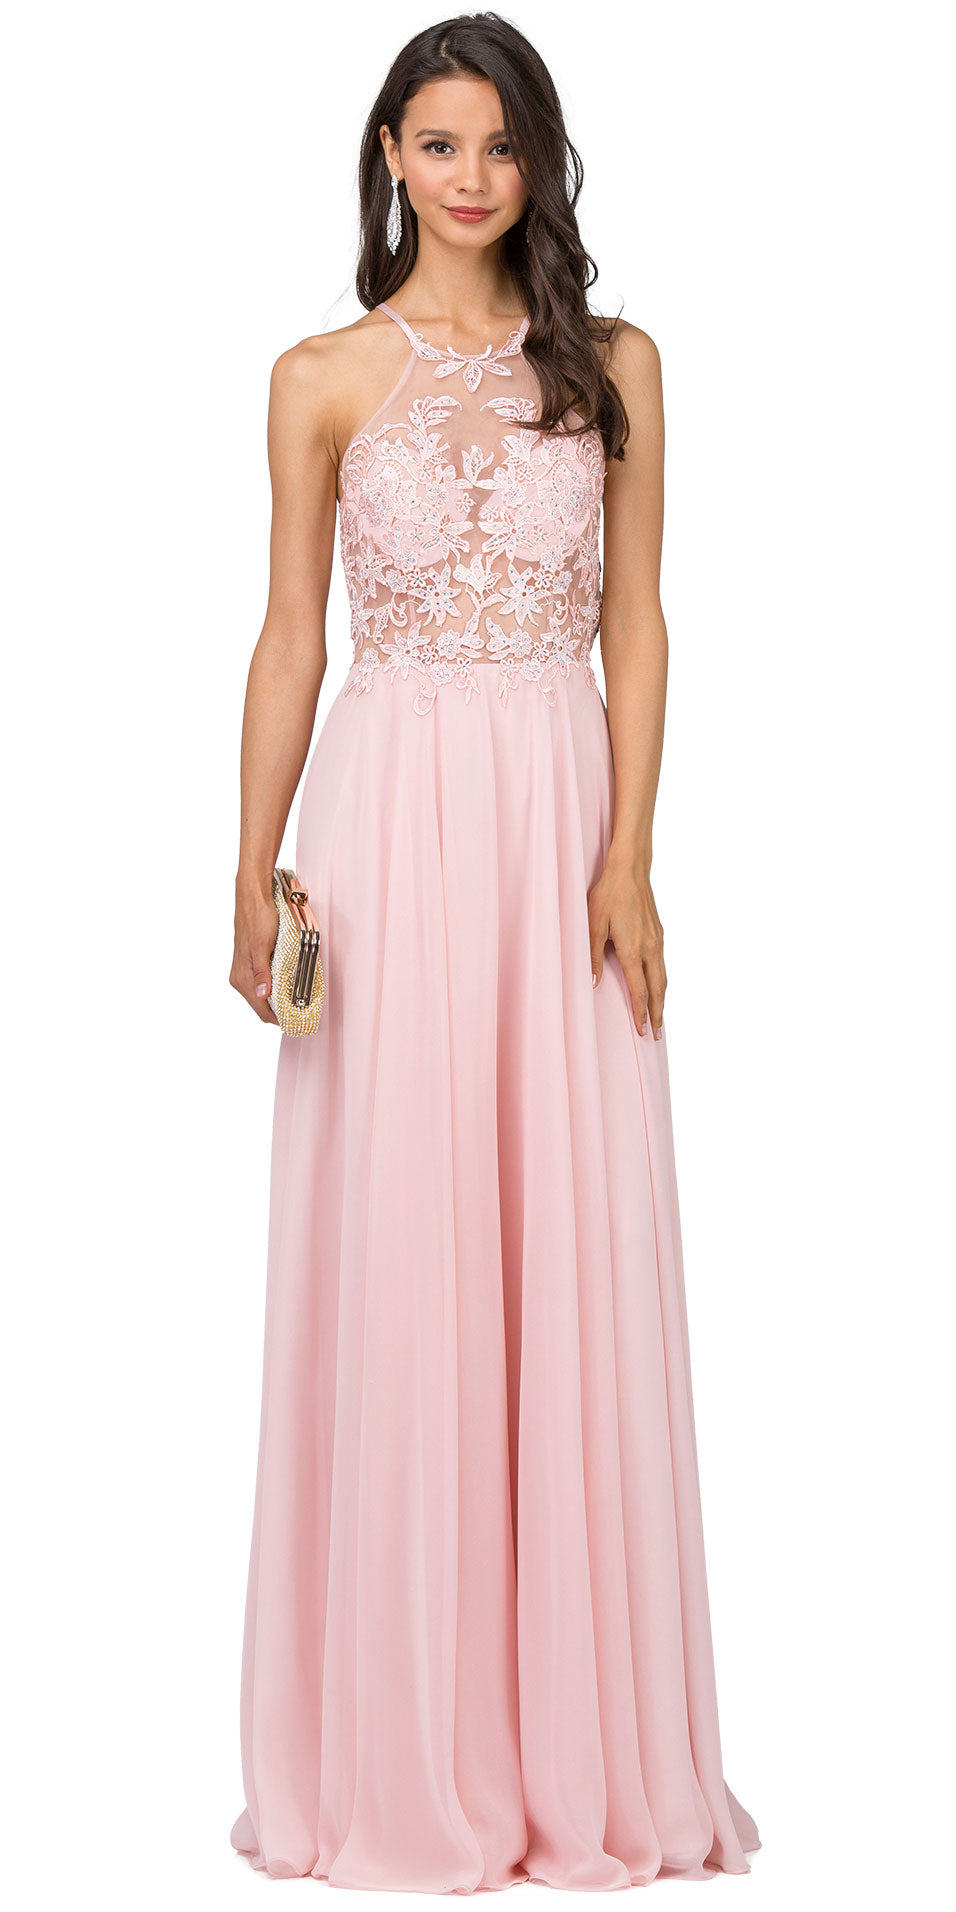 Image of Lace Accent Sheer Mesh Top Chiffon Long Prom Dress in Blush